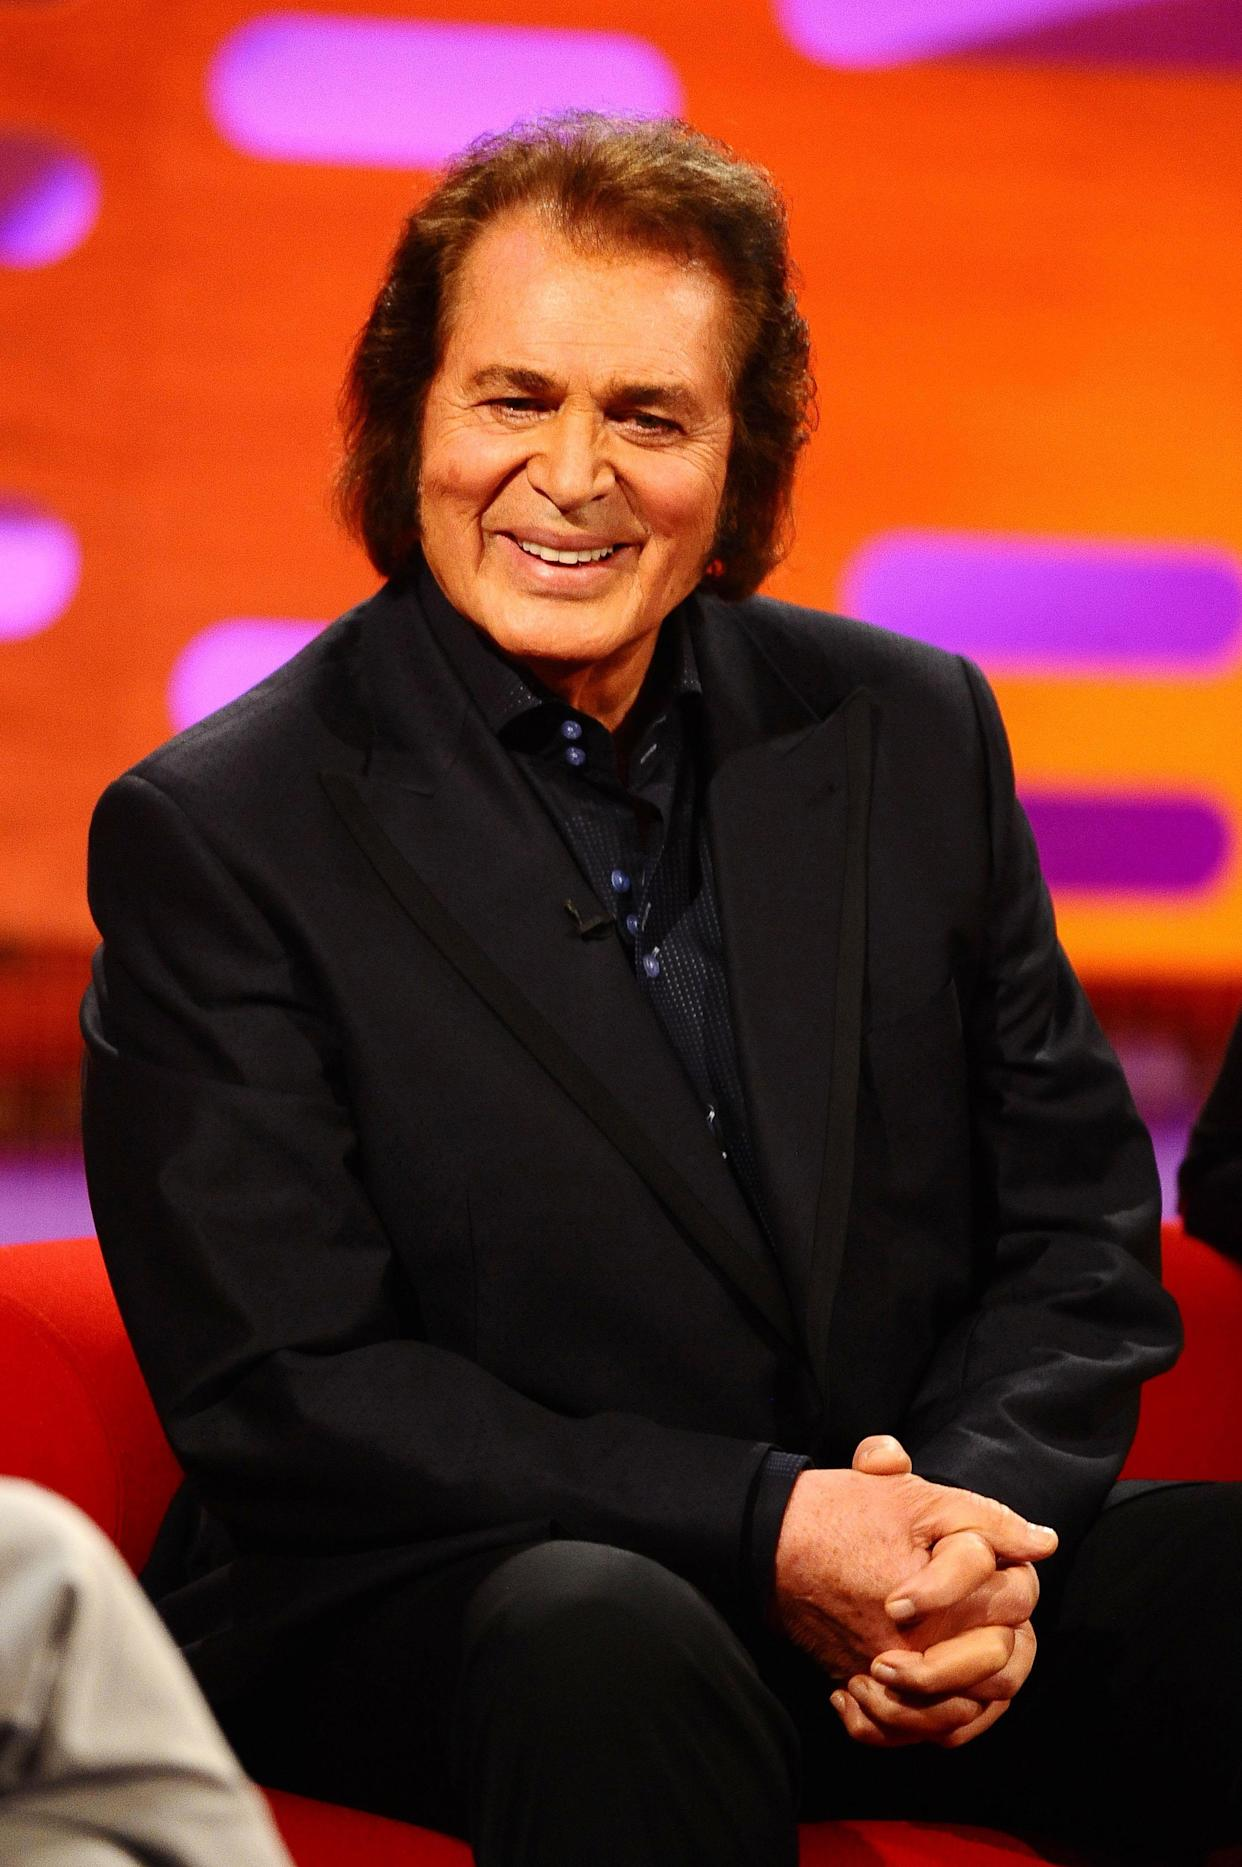 Engelbert Humperdinck during the filming for this week's edition of The Graham Norton Show, at the London Studios in London.